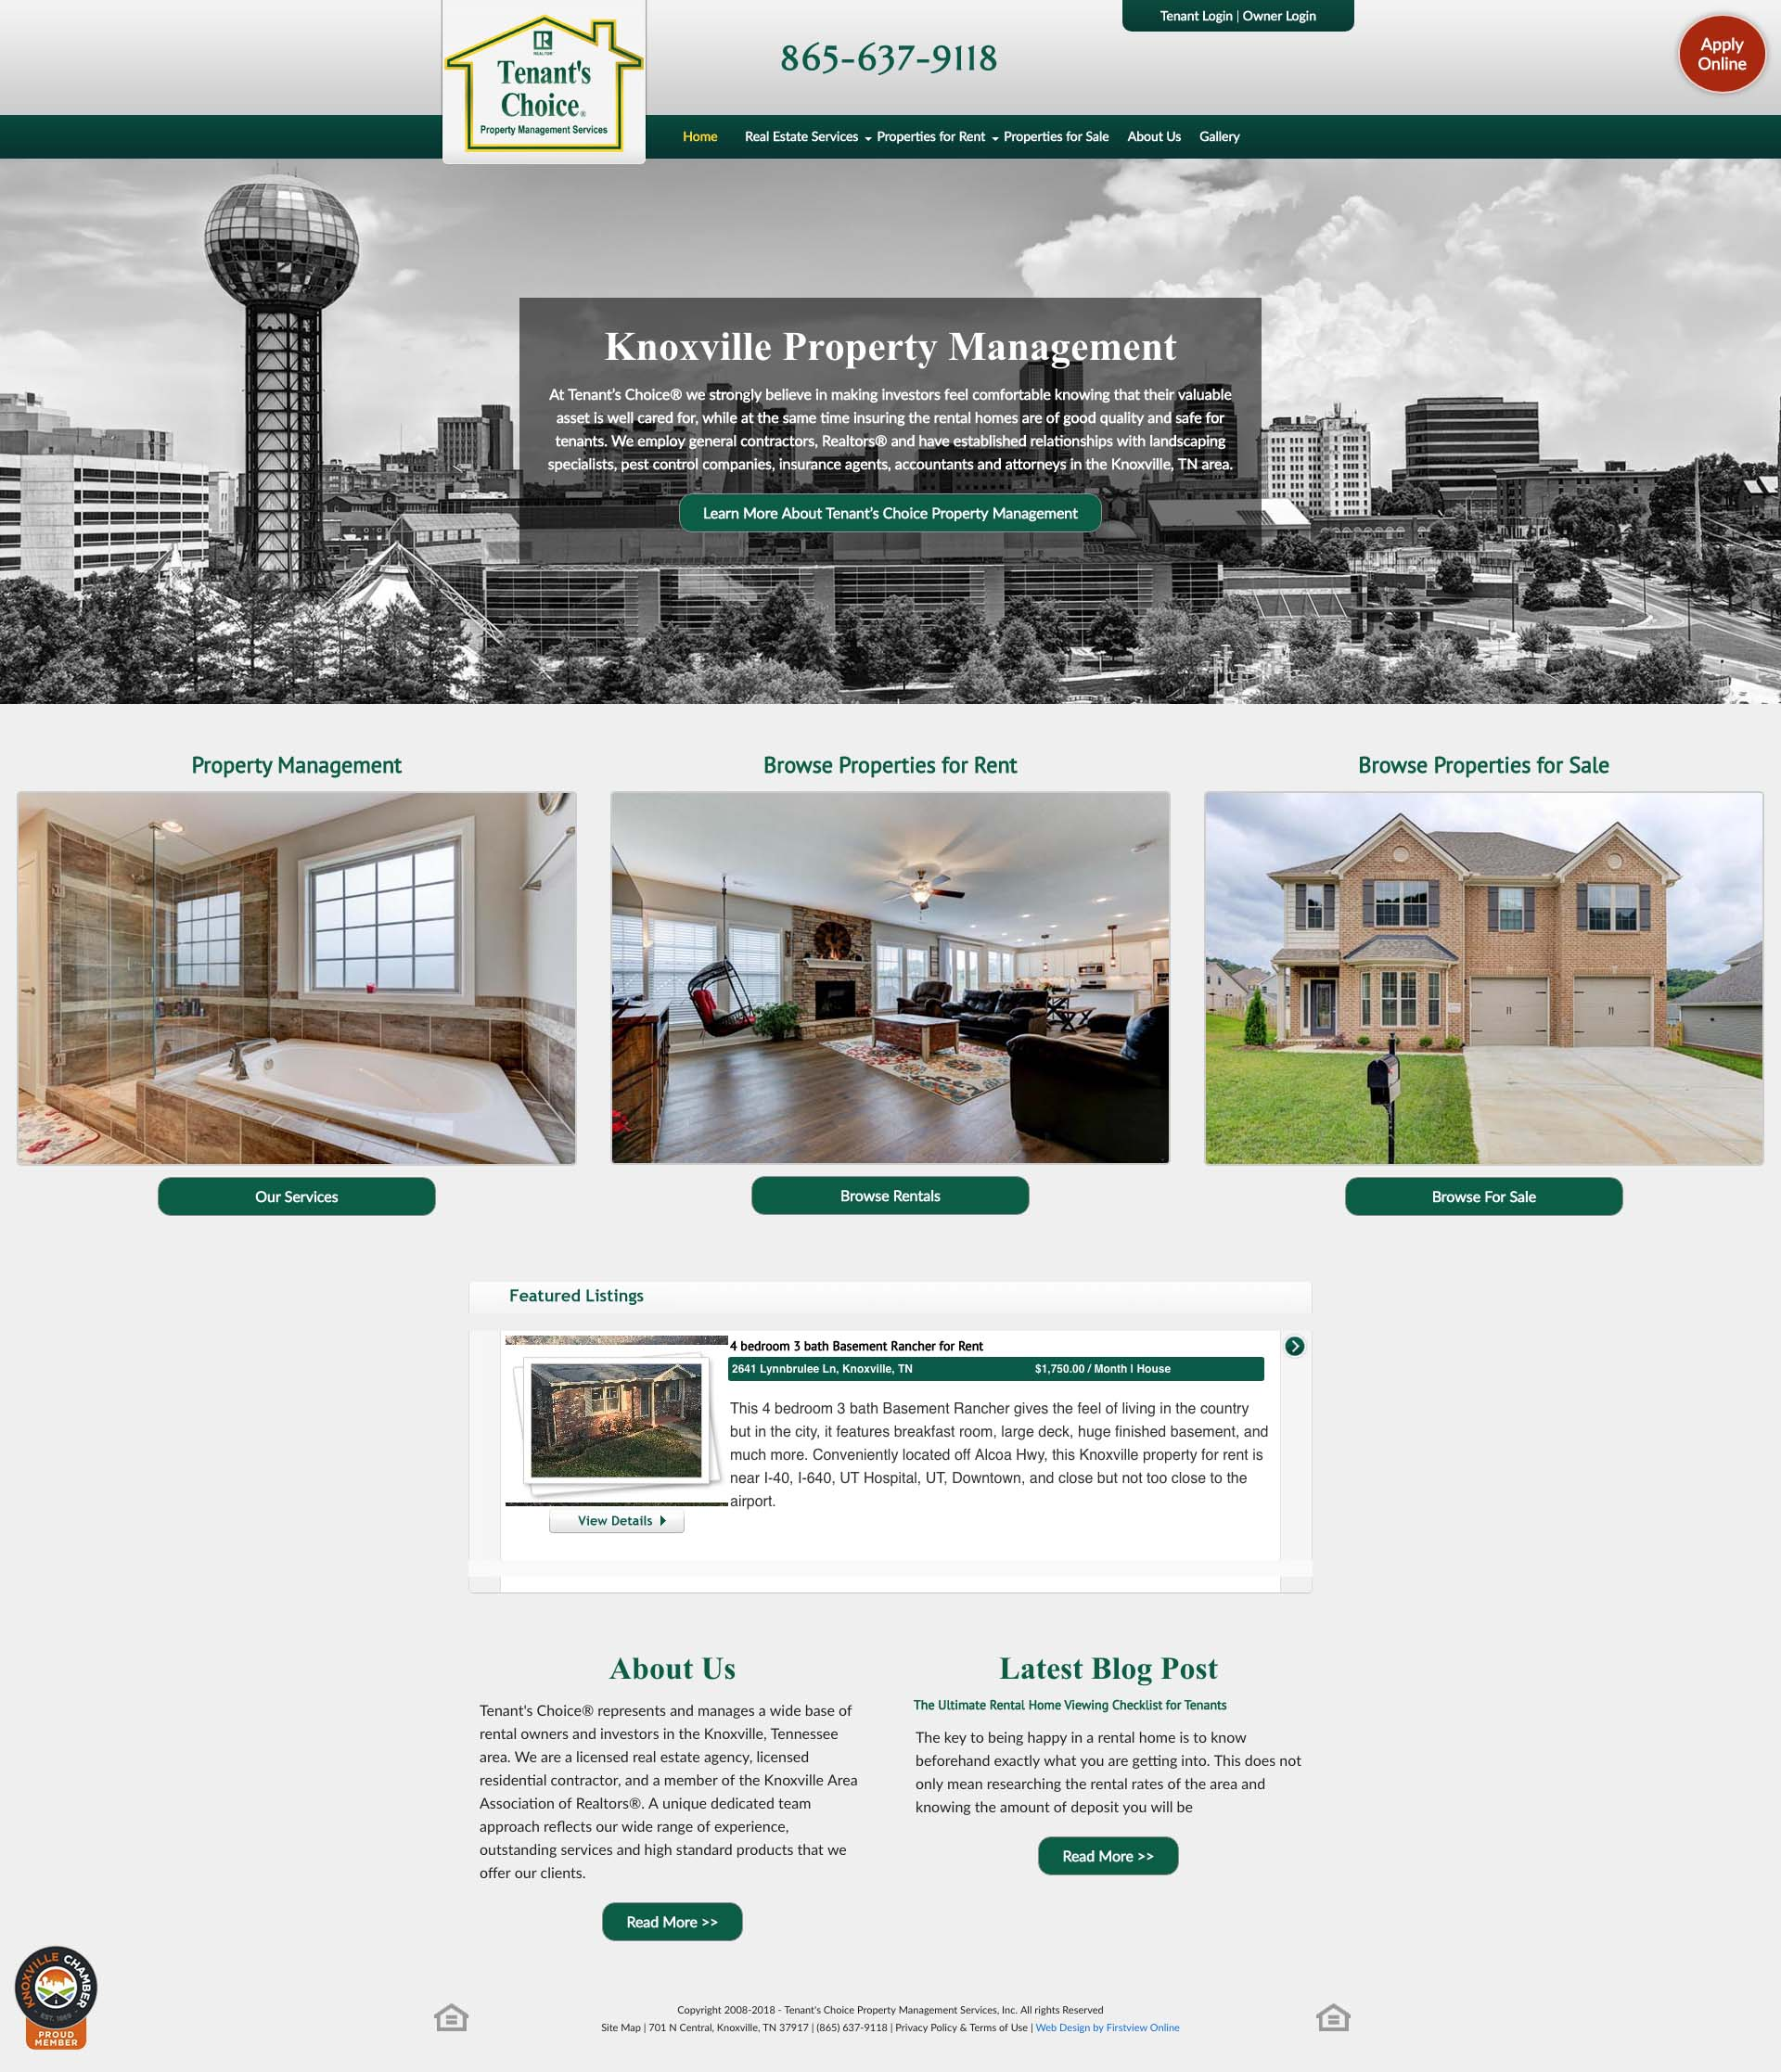 Tenant's Choice Website Design